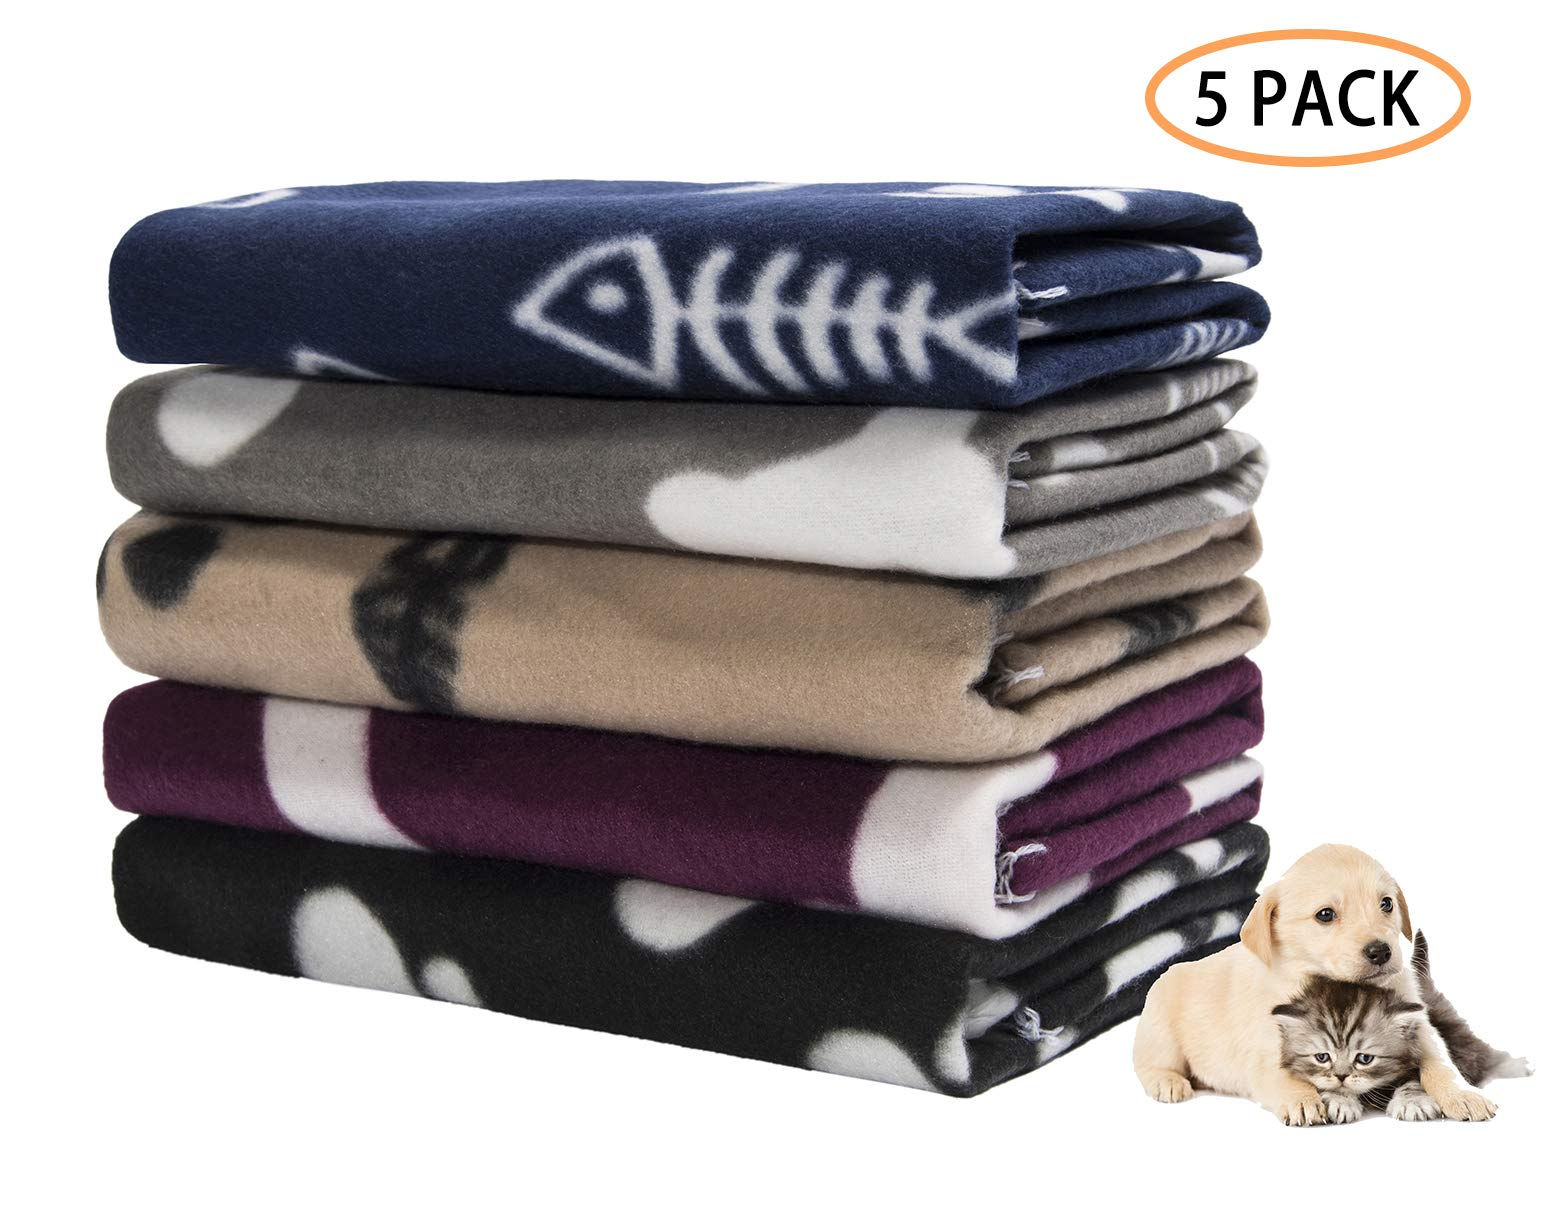 Pet Dog Blanket,Warm Dog Bed Cover Paw Print Fleece Throw Blanket for Small,Medium Dog,Cat,Puppy,Kitten,Other Small Animals,5 Pack Mixed,24''x28''